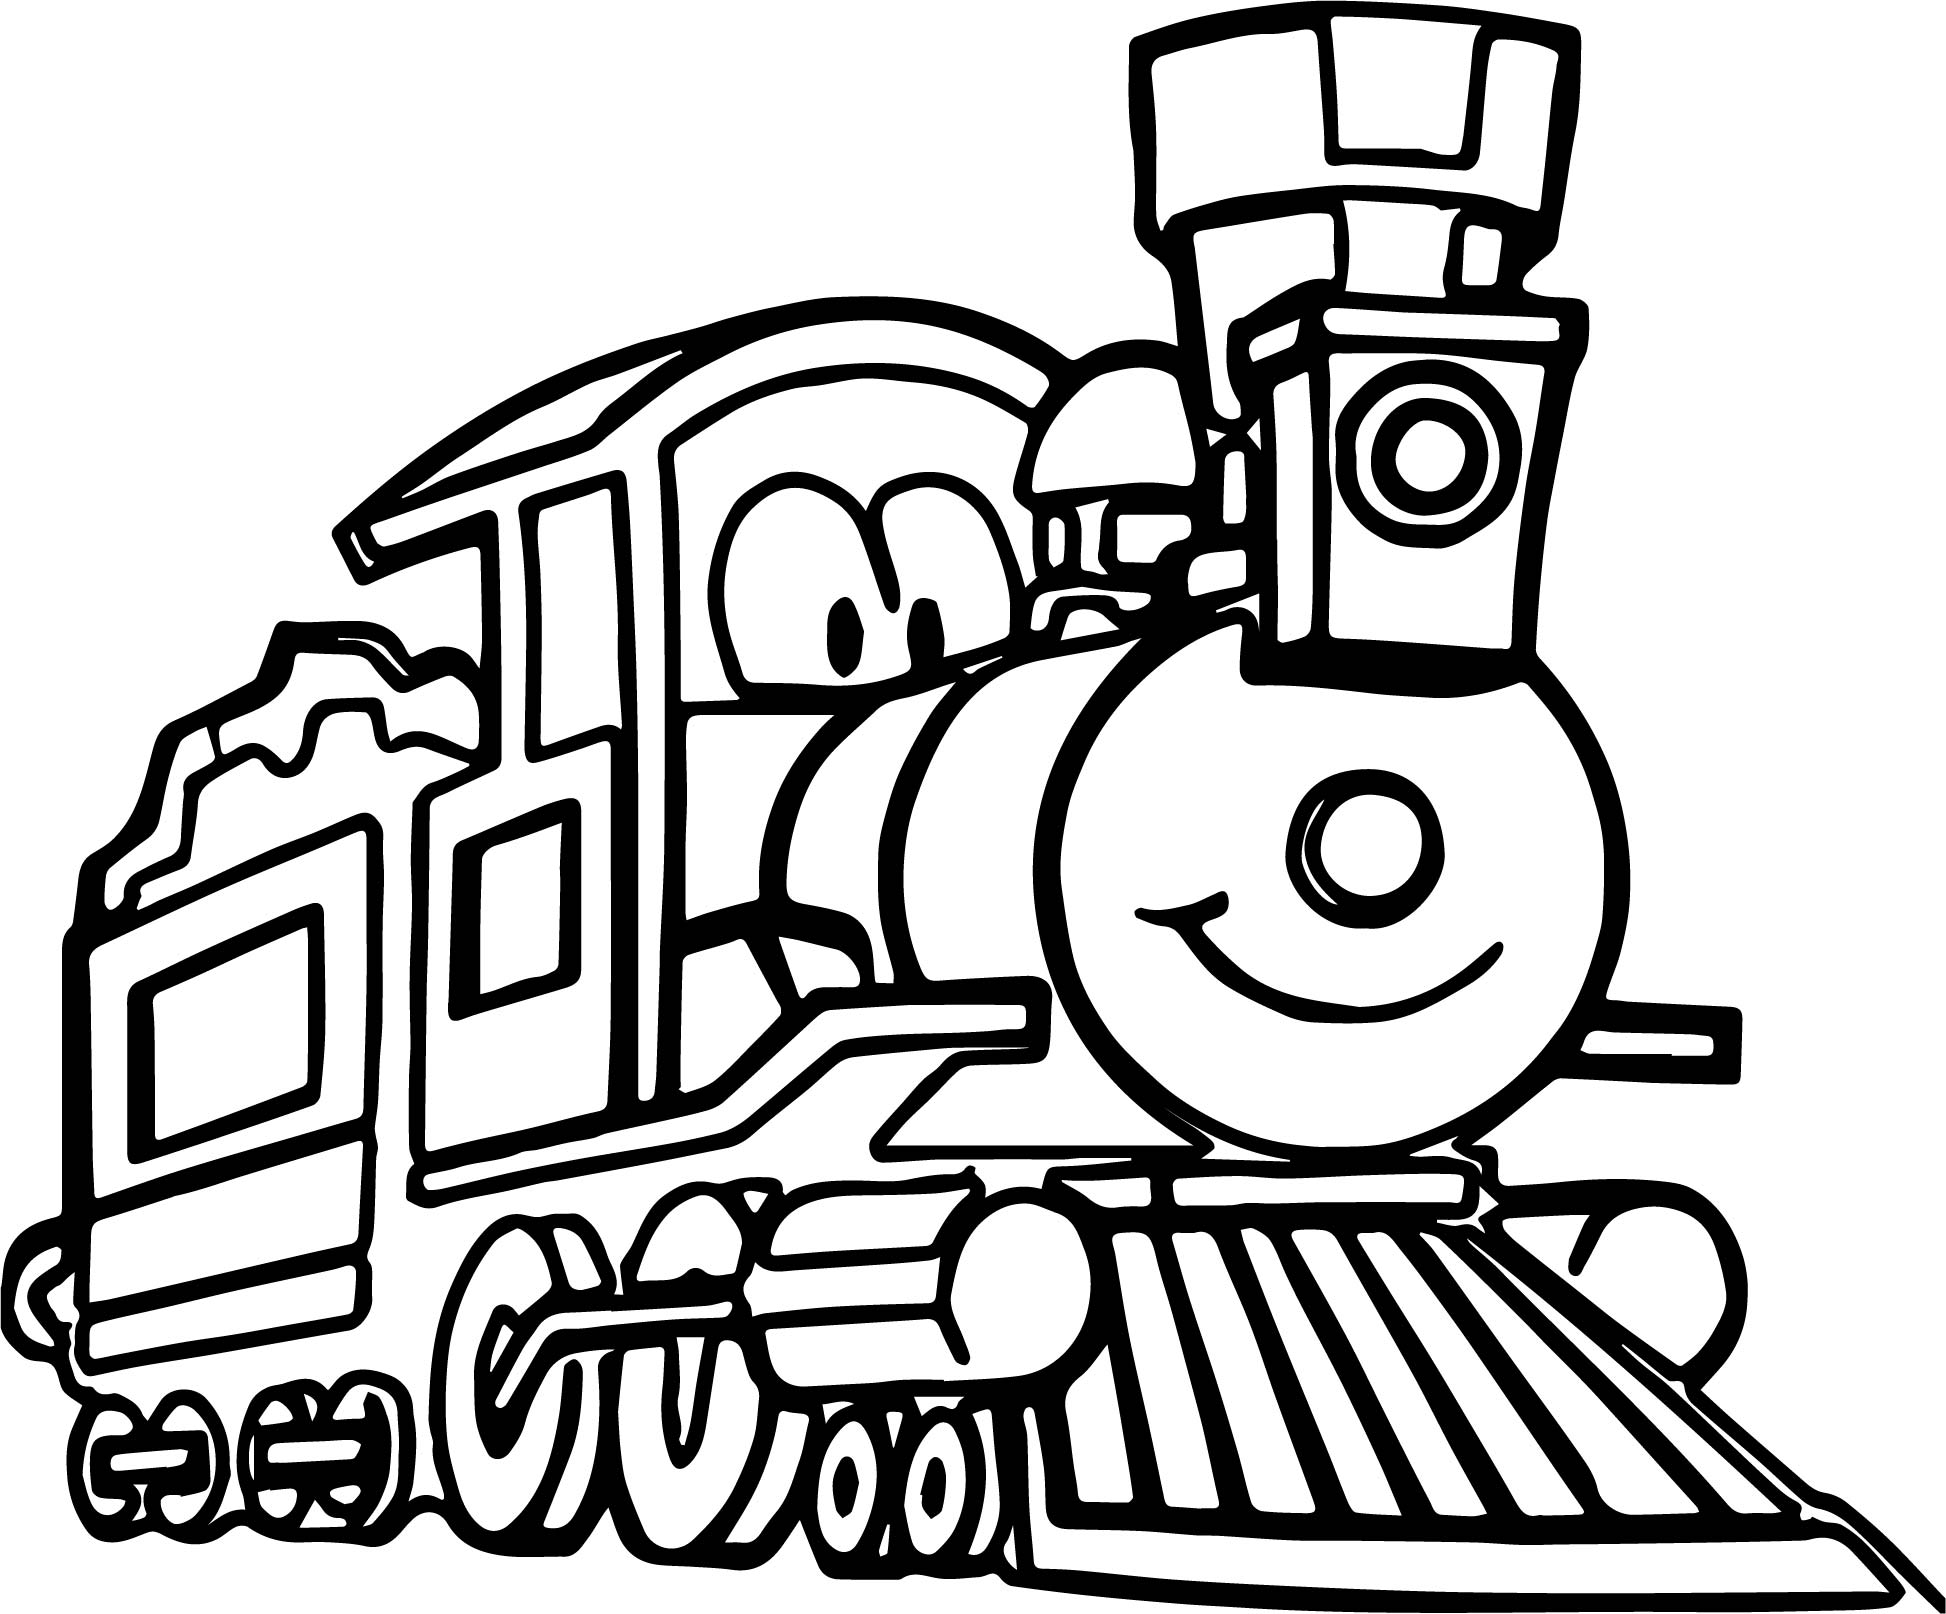 train coloring csx train coloring pages at getdrawings free download coloring train